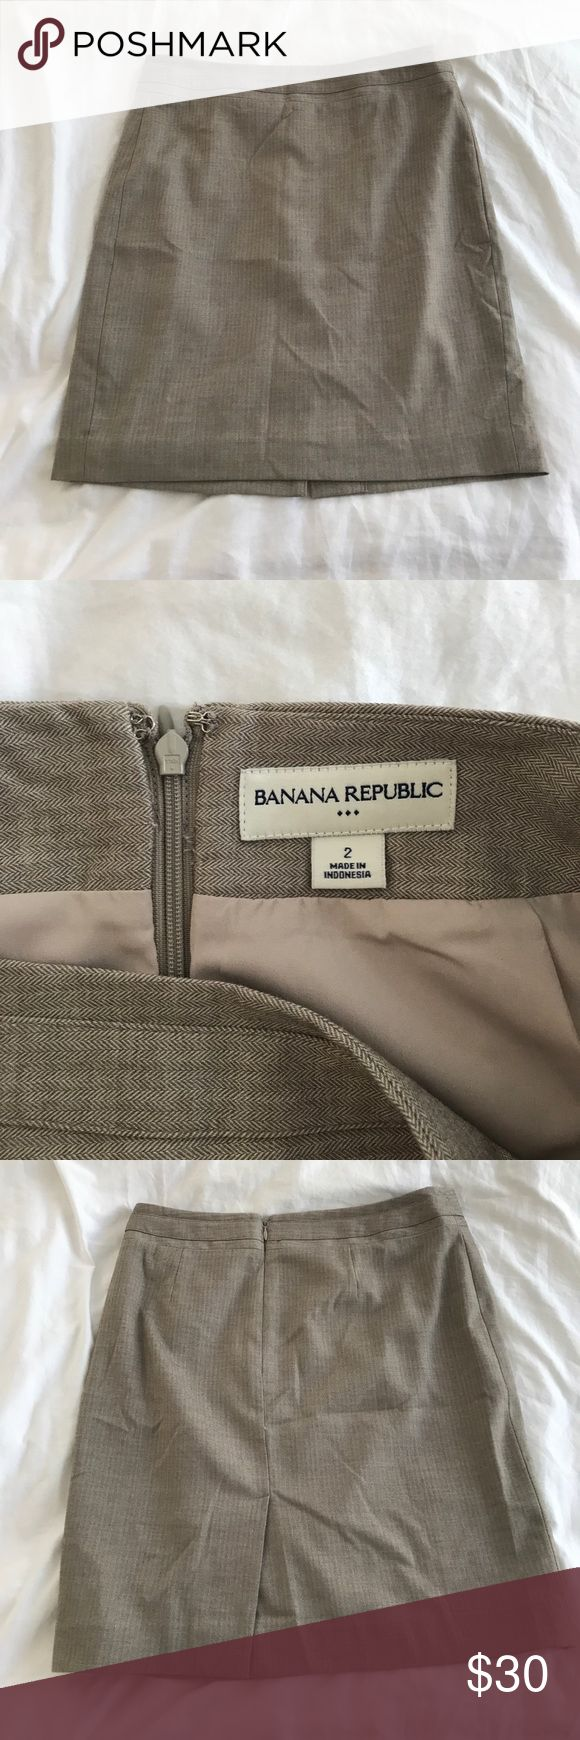 Banana Republic Size 2 khaki pencil skirt Necessary skirt for business casual days at the office. Size 2 from Banana Republic. Zipper in the back. Double lining, materials are as photographed. Worn lightly. Questions?! ✨ Banana Republic Skirts Pencil